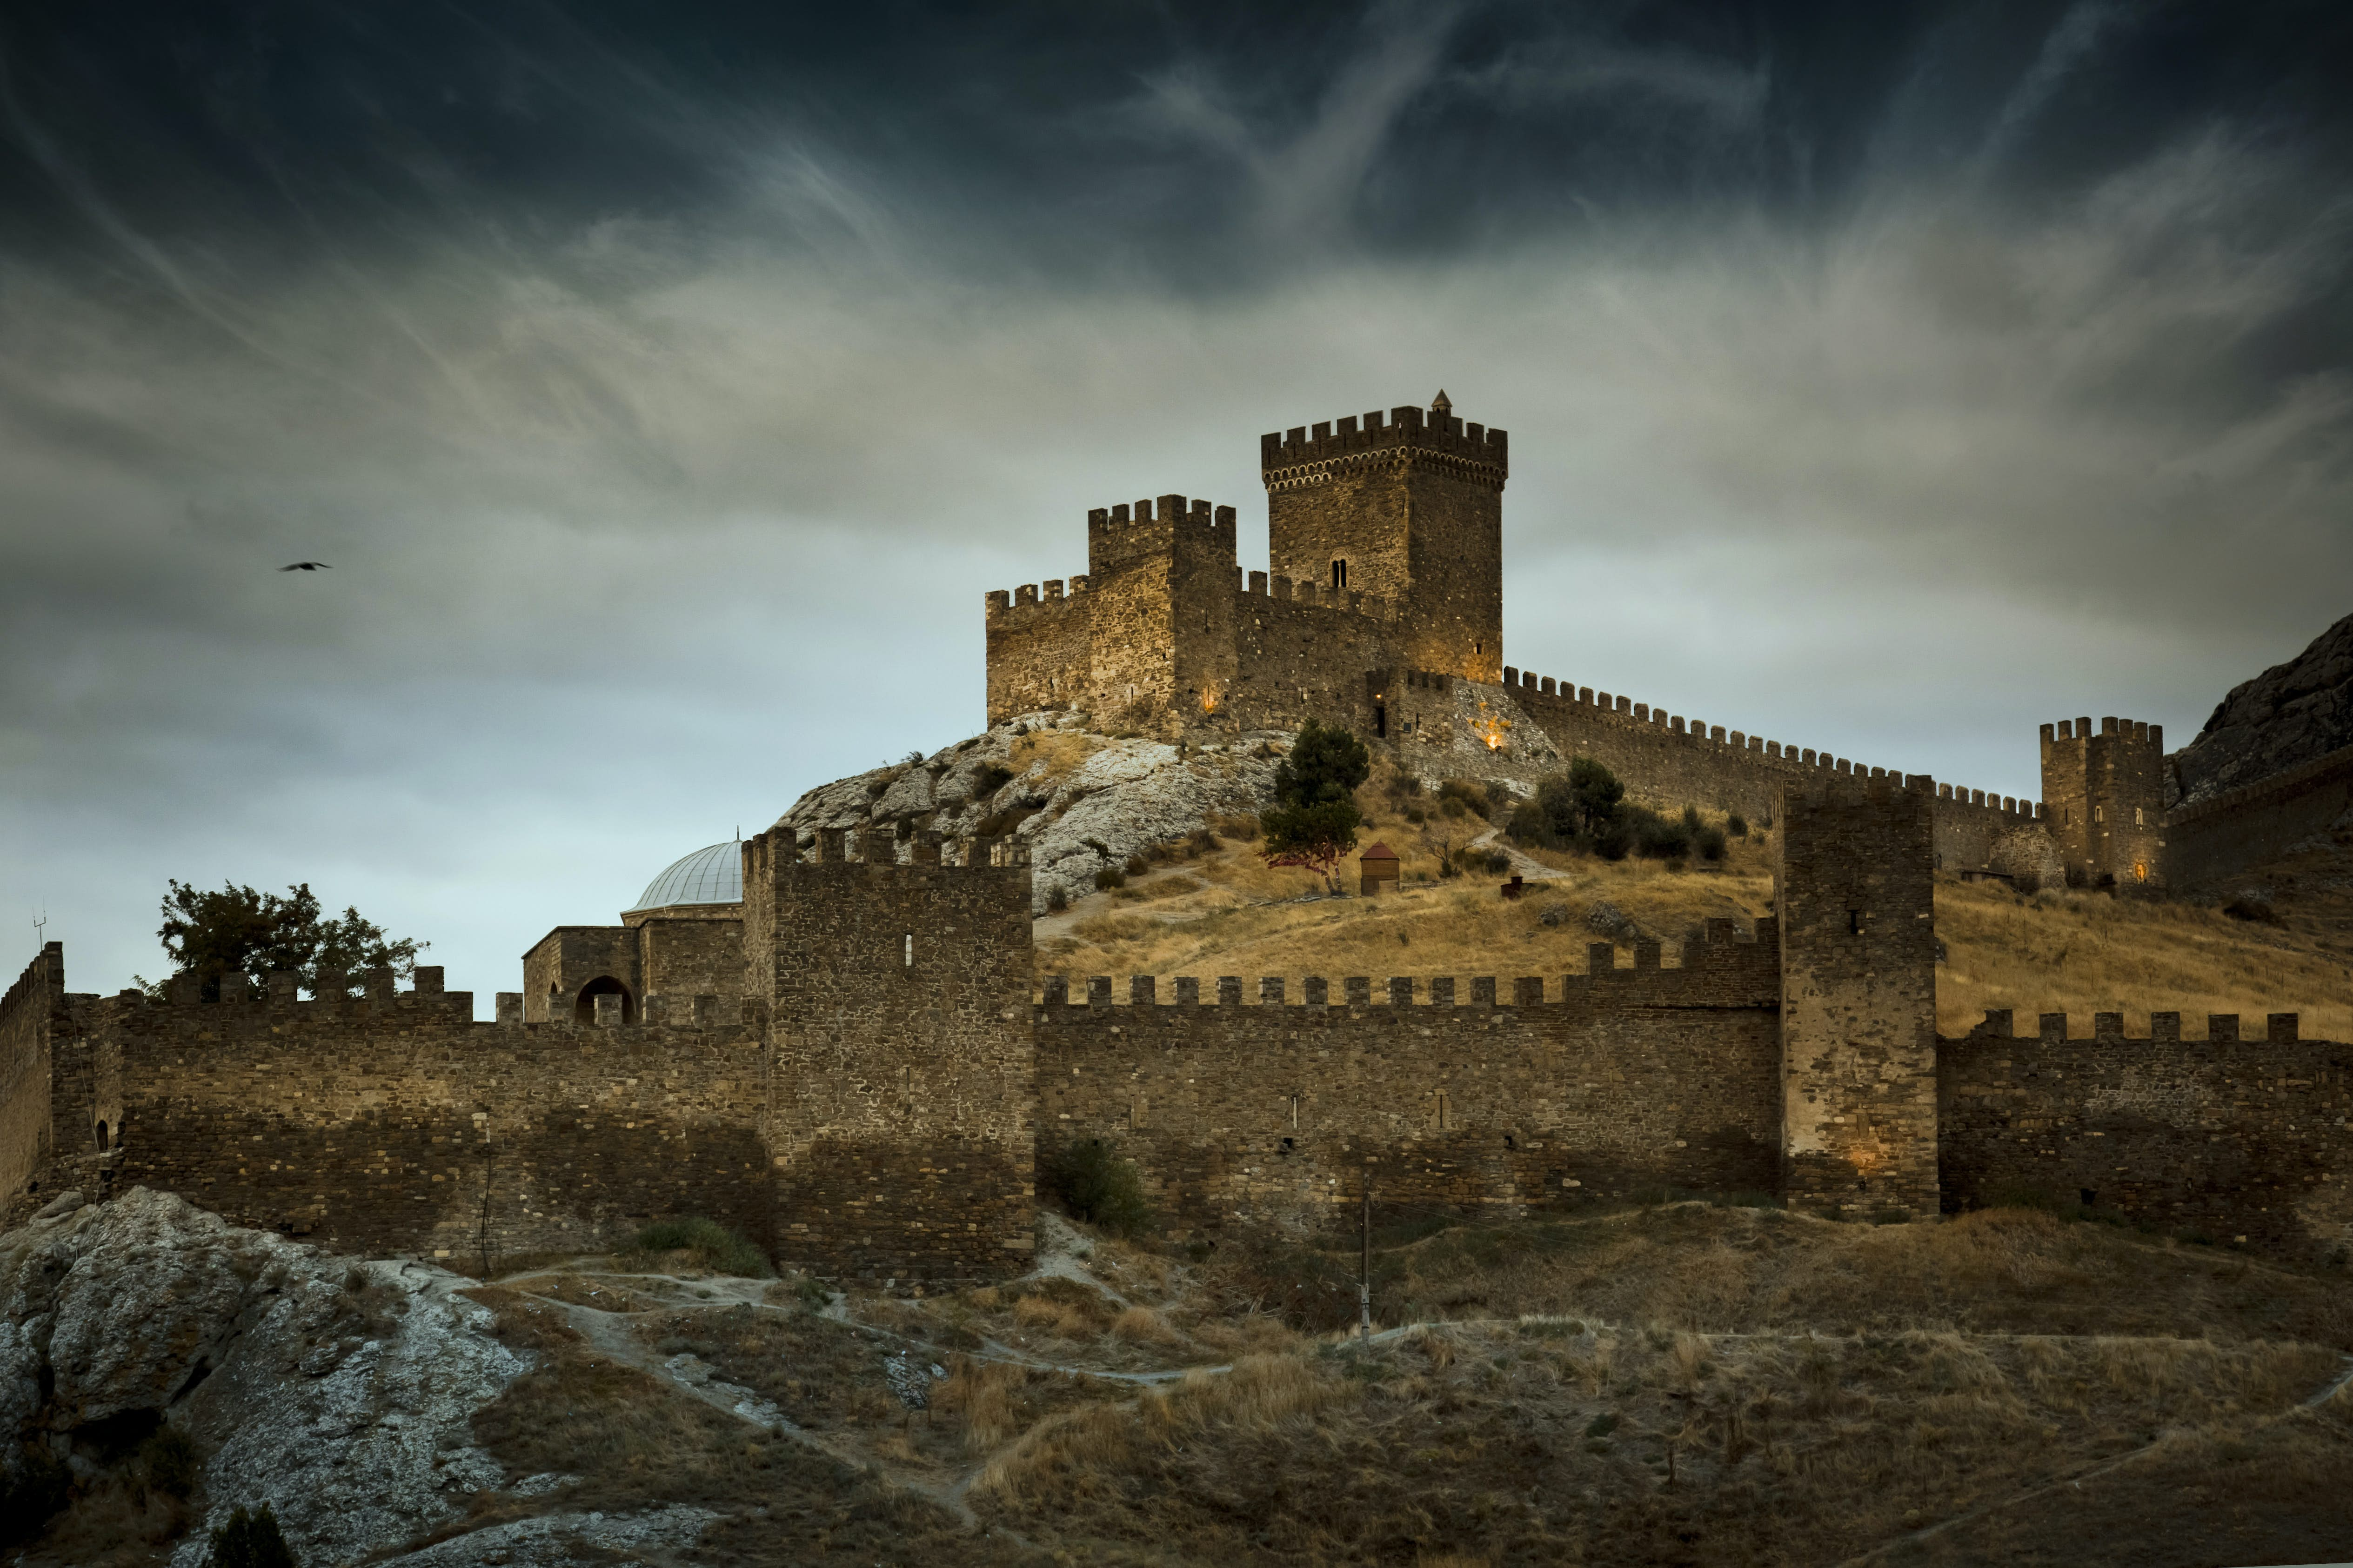 Castles were central to medieval warfare